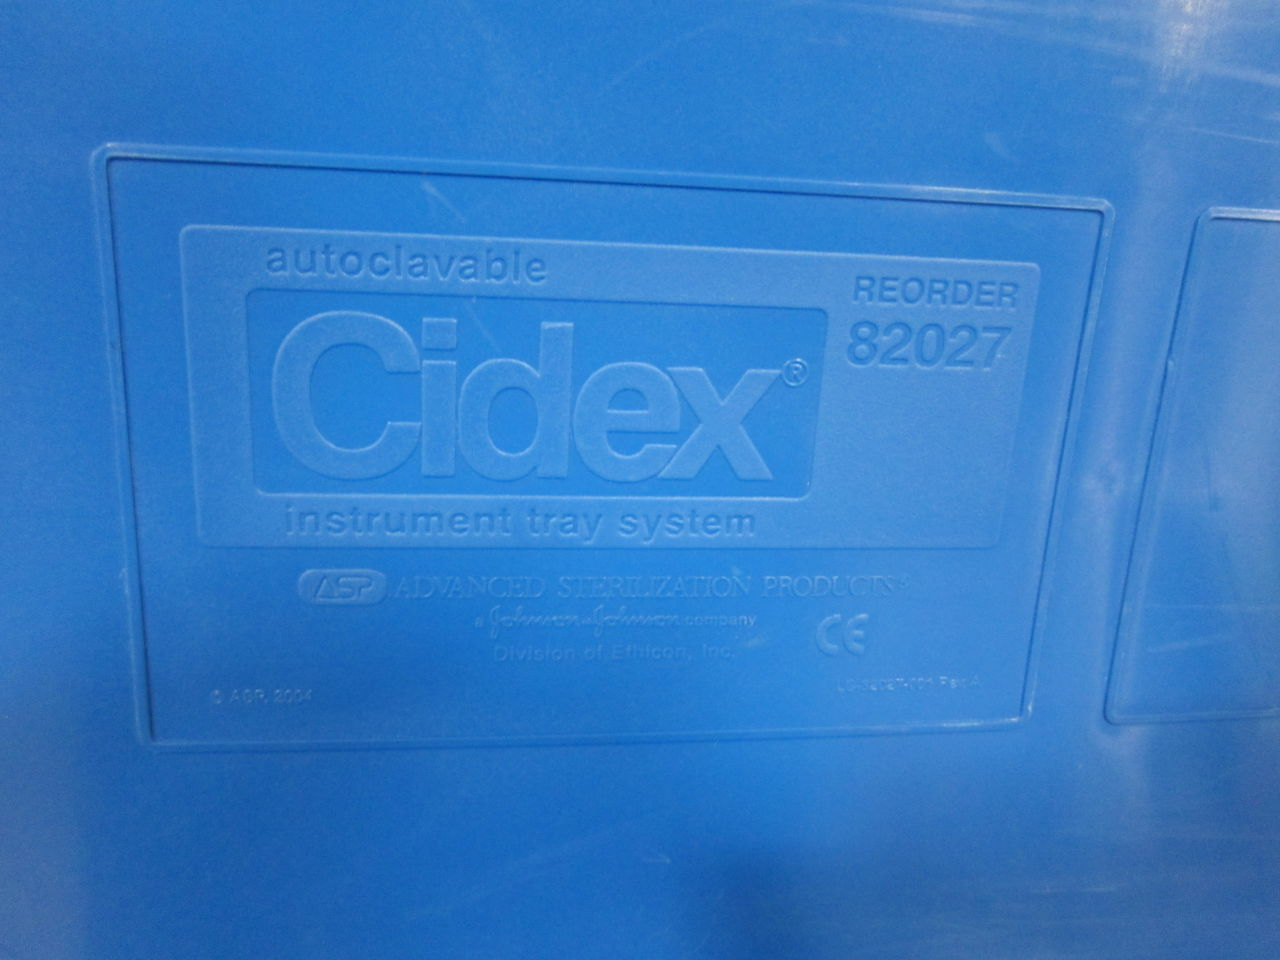 CIDEX 82027  - Lot of 2 Surgical Cases